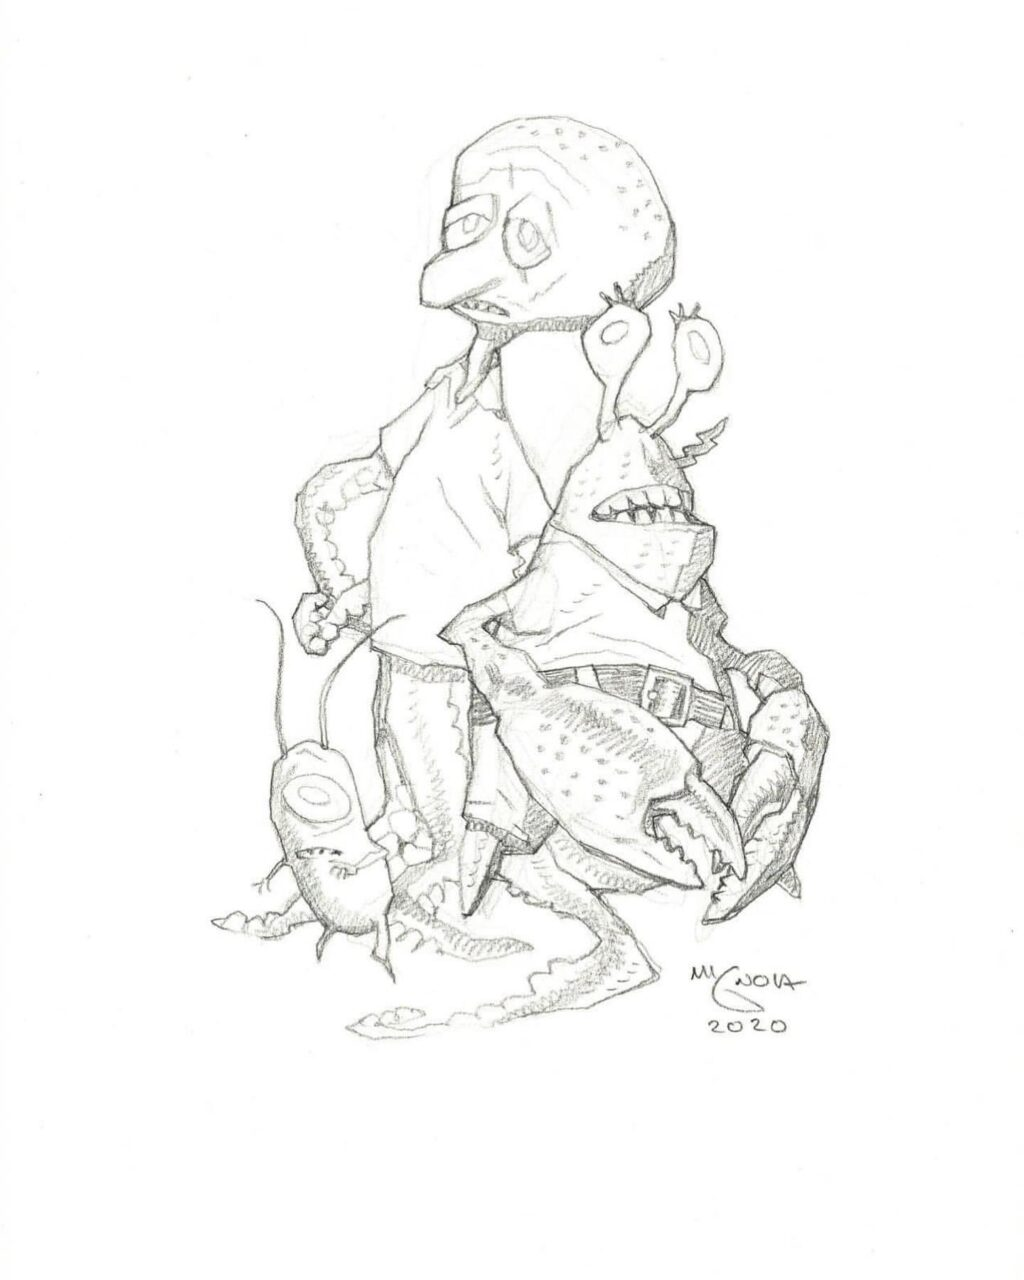 mike mignola spongebob characters 2 1 1024x1280 - Mike Mignola Shares Incredible Quarantine Artwork Of All Your Favourite Characters